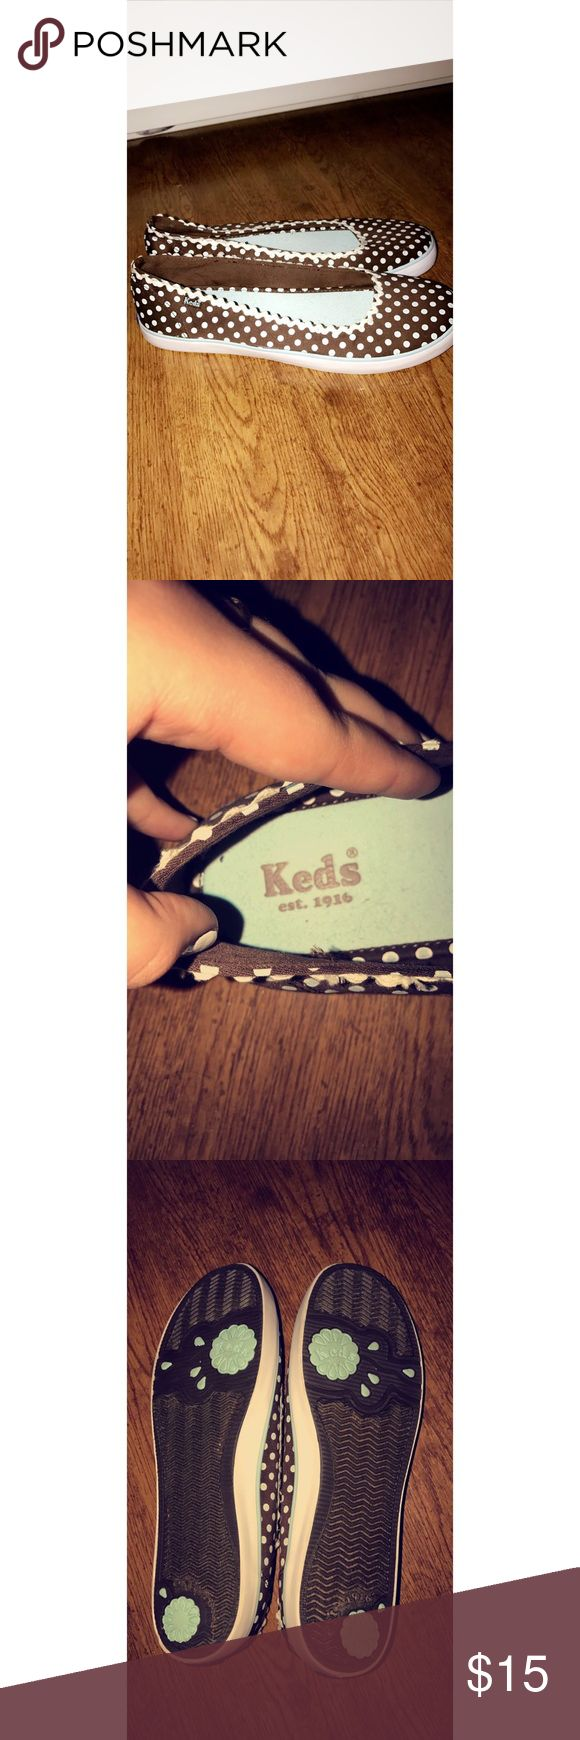 KEDS slip ons Brown and green polka dot KEDS! Size 9. Keds Shoes Flats & Loafers